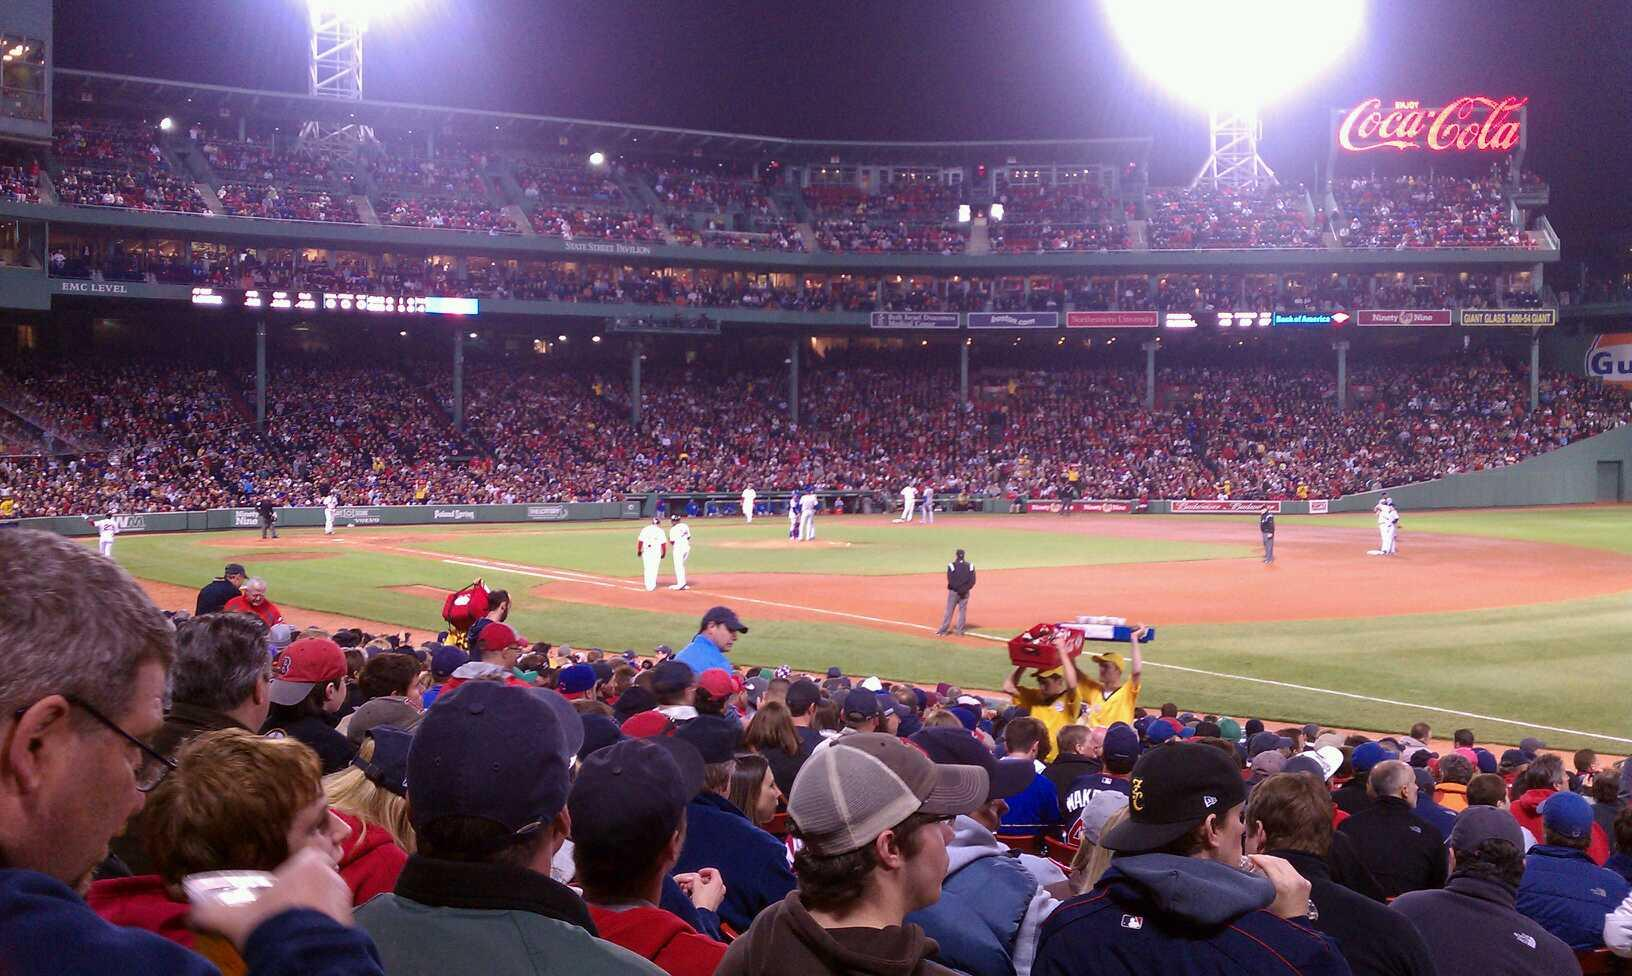 Fenway Park Section Loge Box 98 Row GG Seat 8